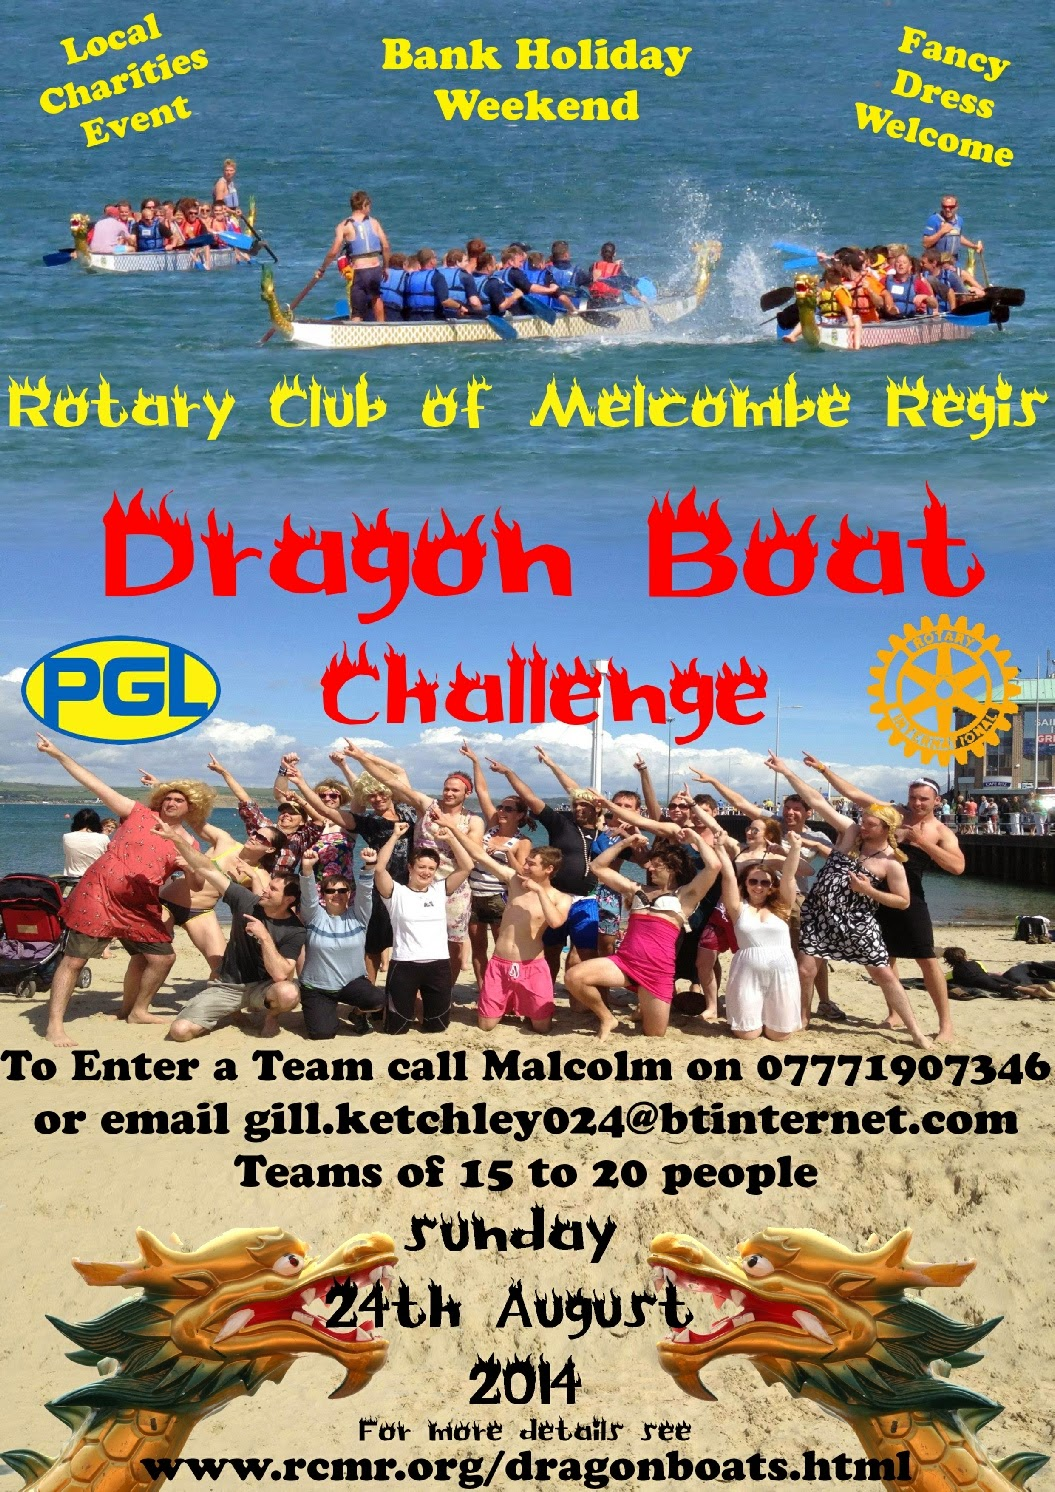 Dragon Boat Racing Challenge Weymouth Beach Sunday 24th August 2014